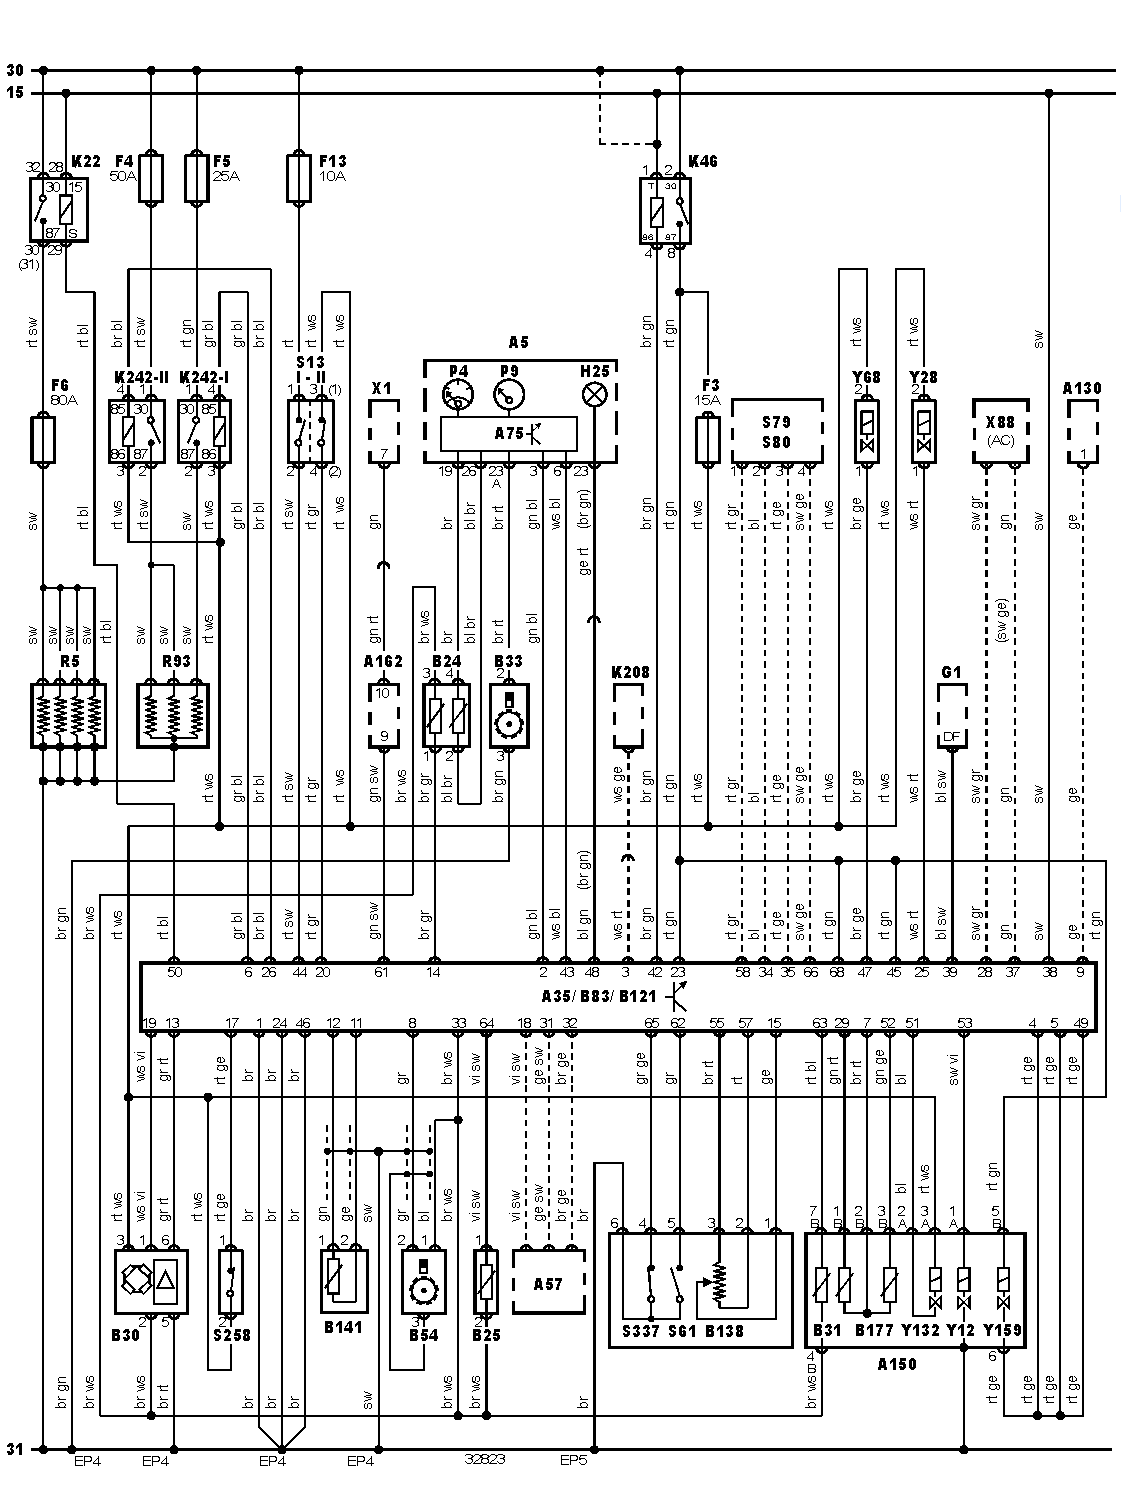 2011 ford fusion wiring diagrams  ford  wiring diagram images